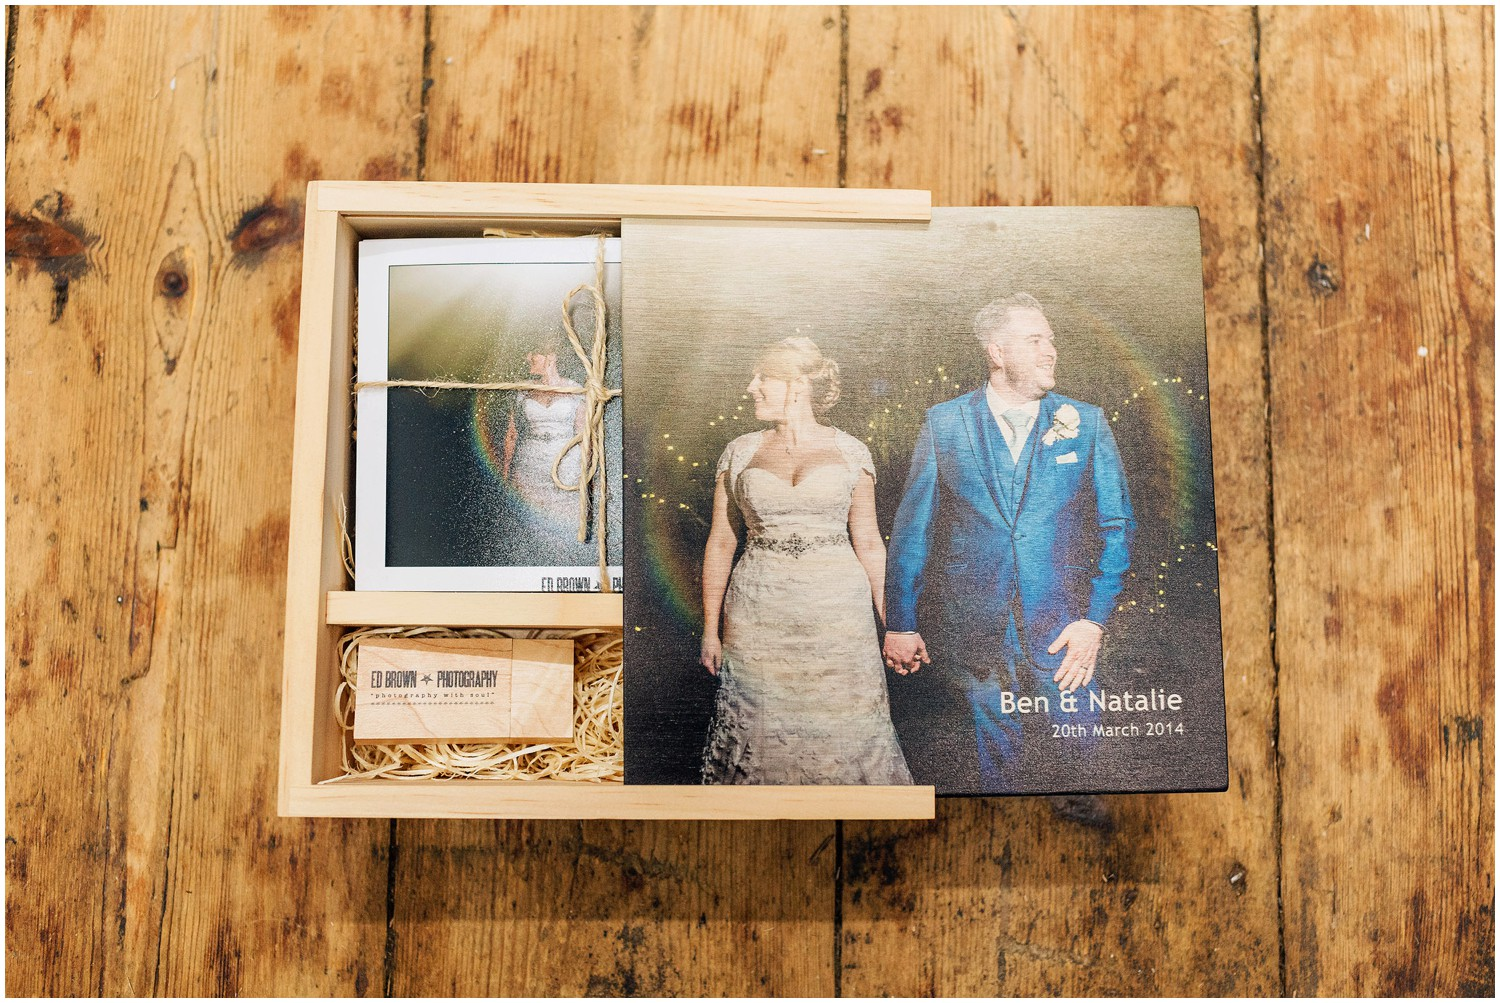 Personalised image USB box with prints